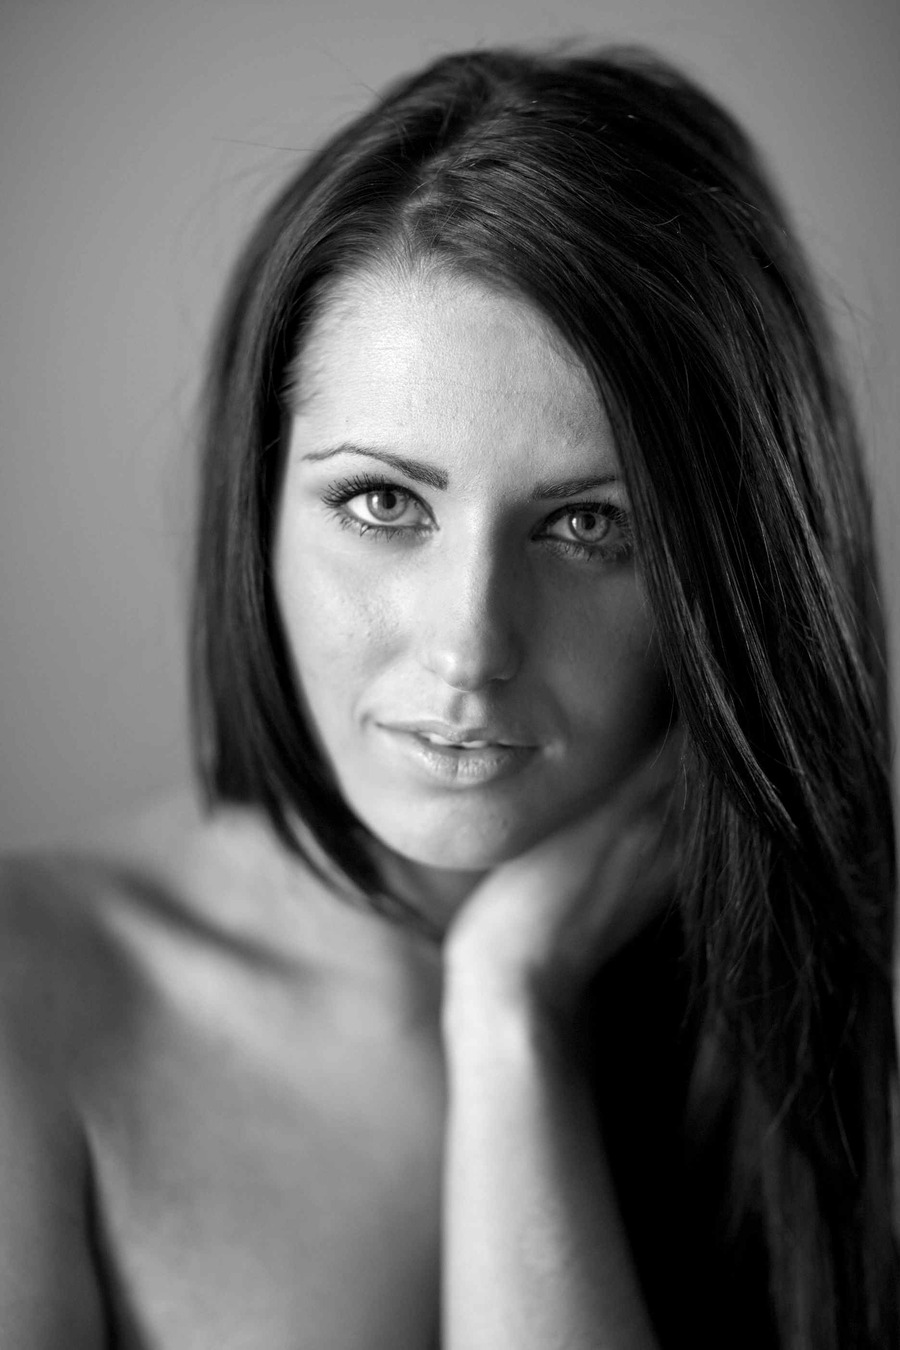 Lora Jay Portrait in Natural light / Photography by Alastair / Uploaded 1st July 2012 @ 03:33 PM